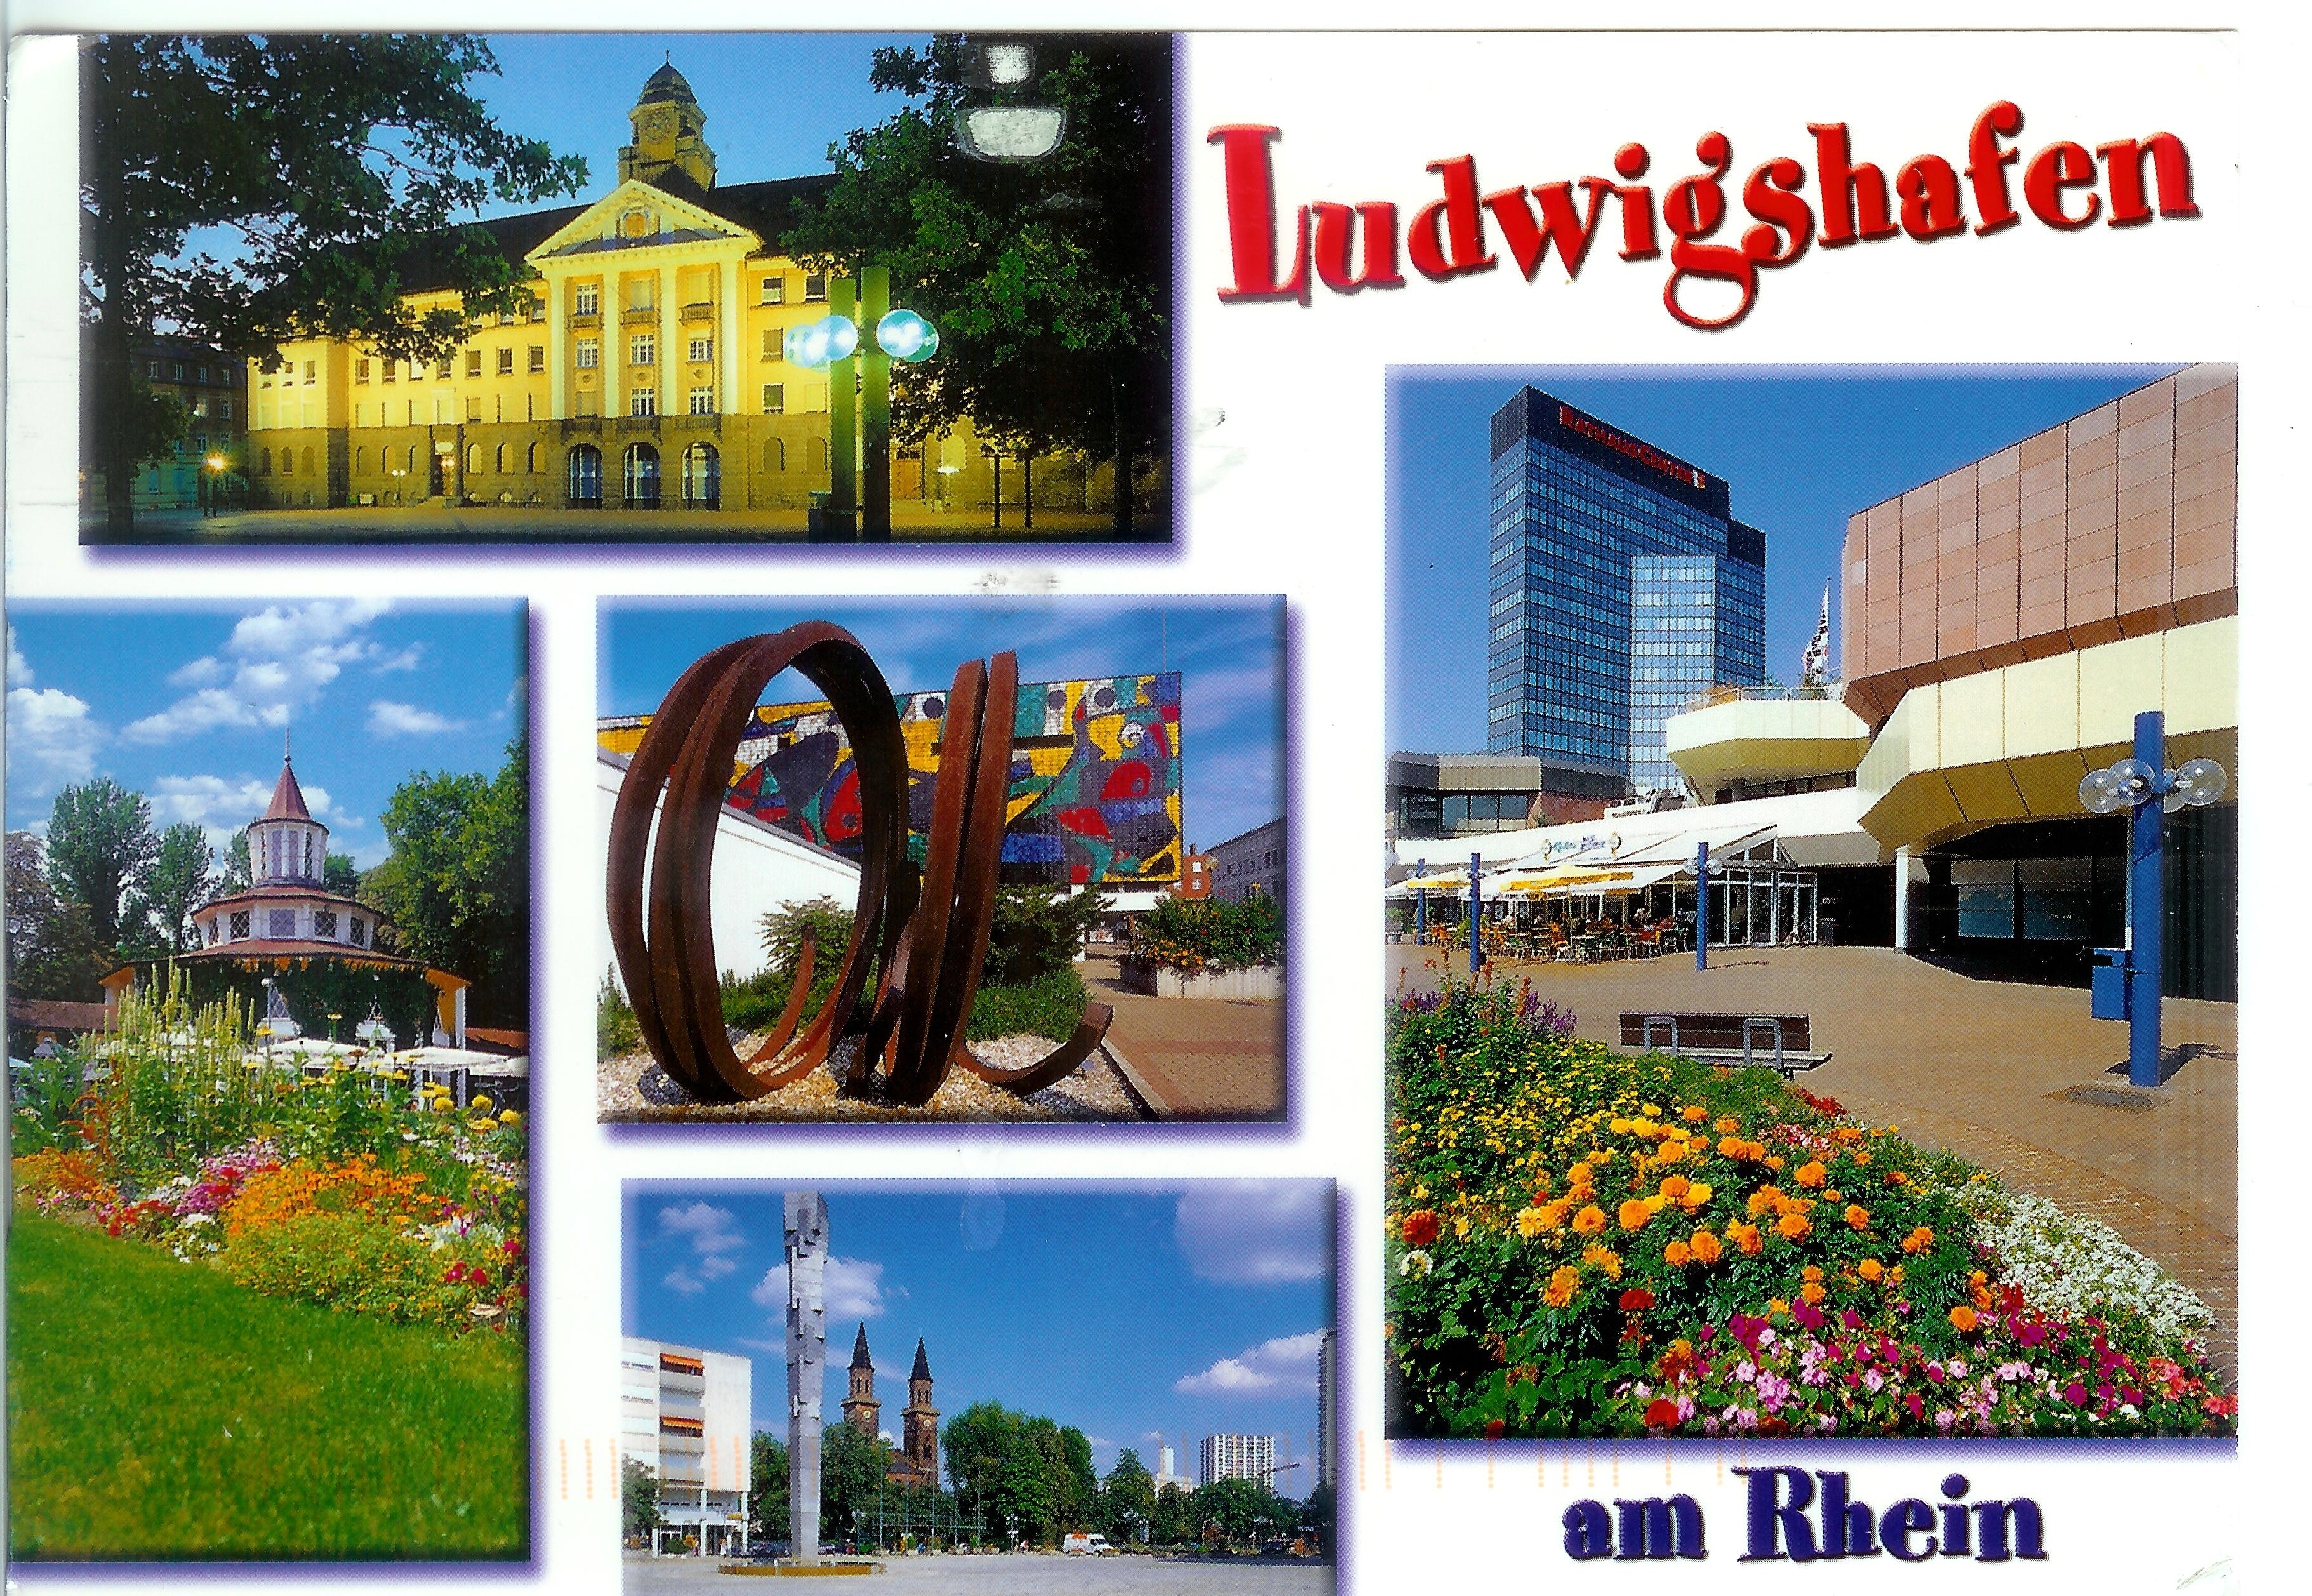 Ludwigshafen City - Germany HD Wallpapers and Photos  vivowallpapar.com